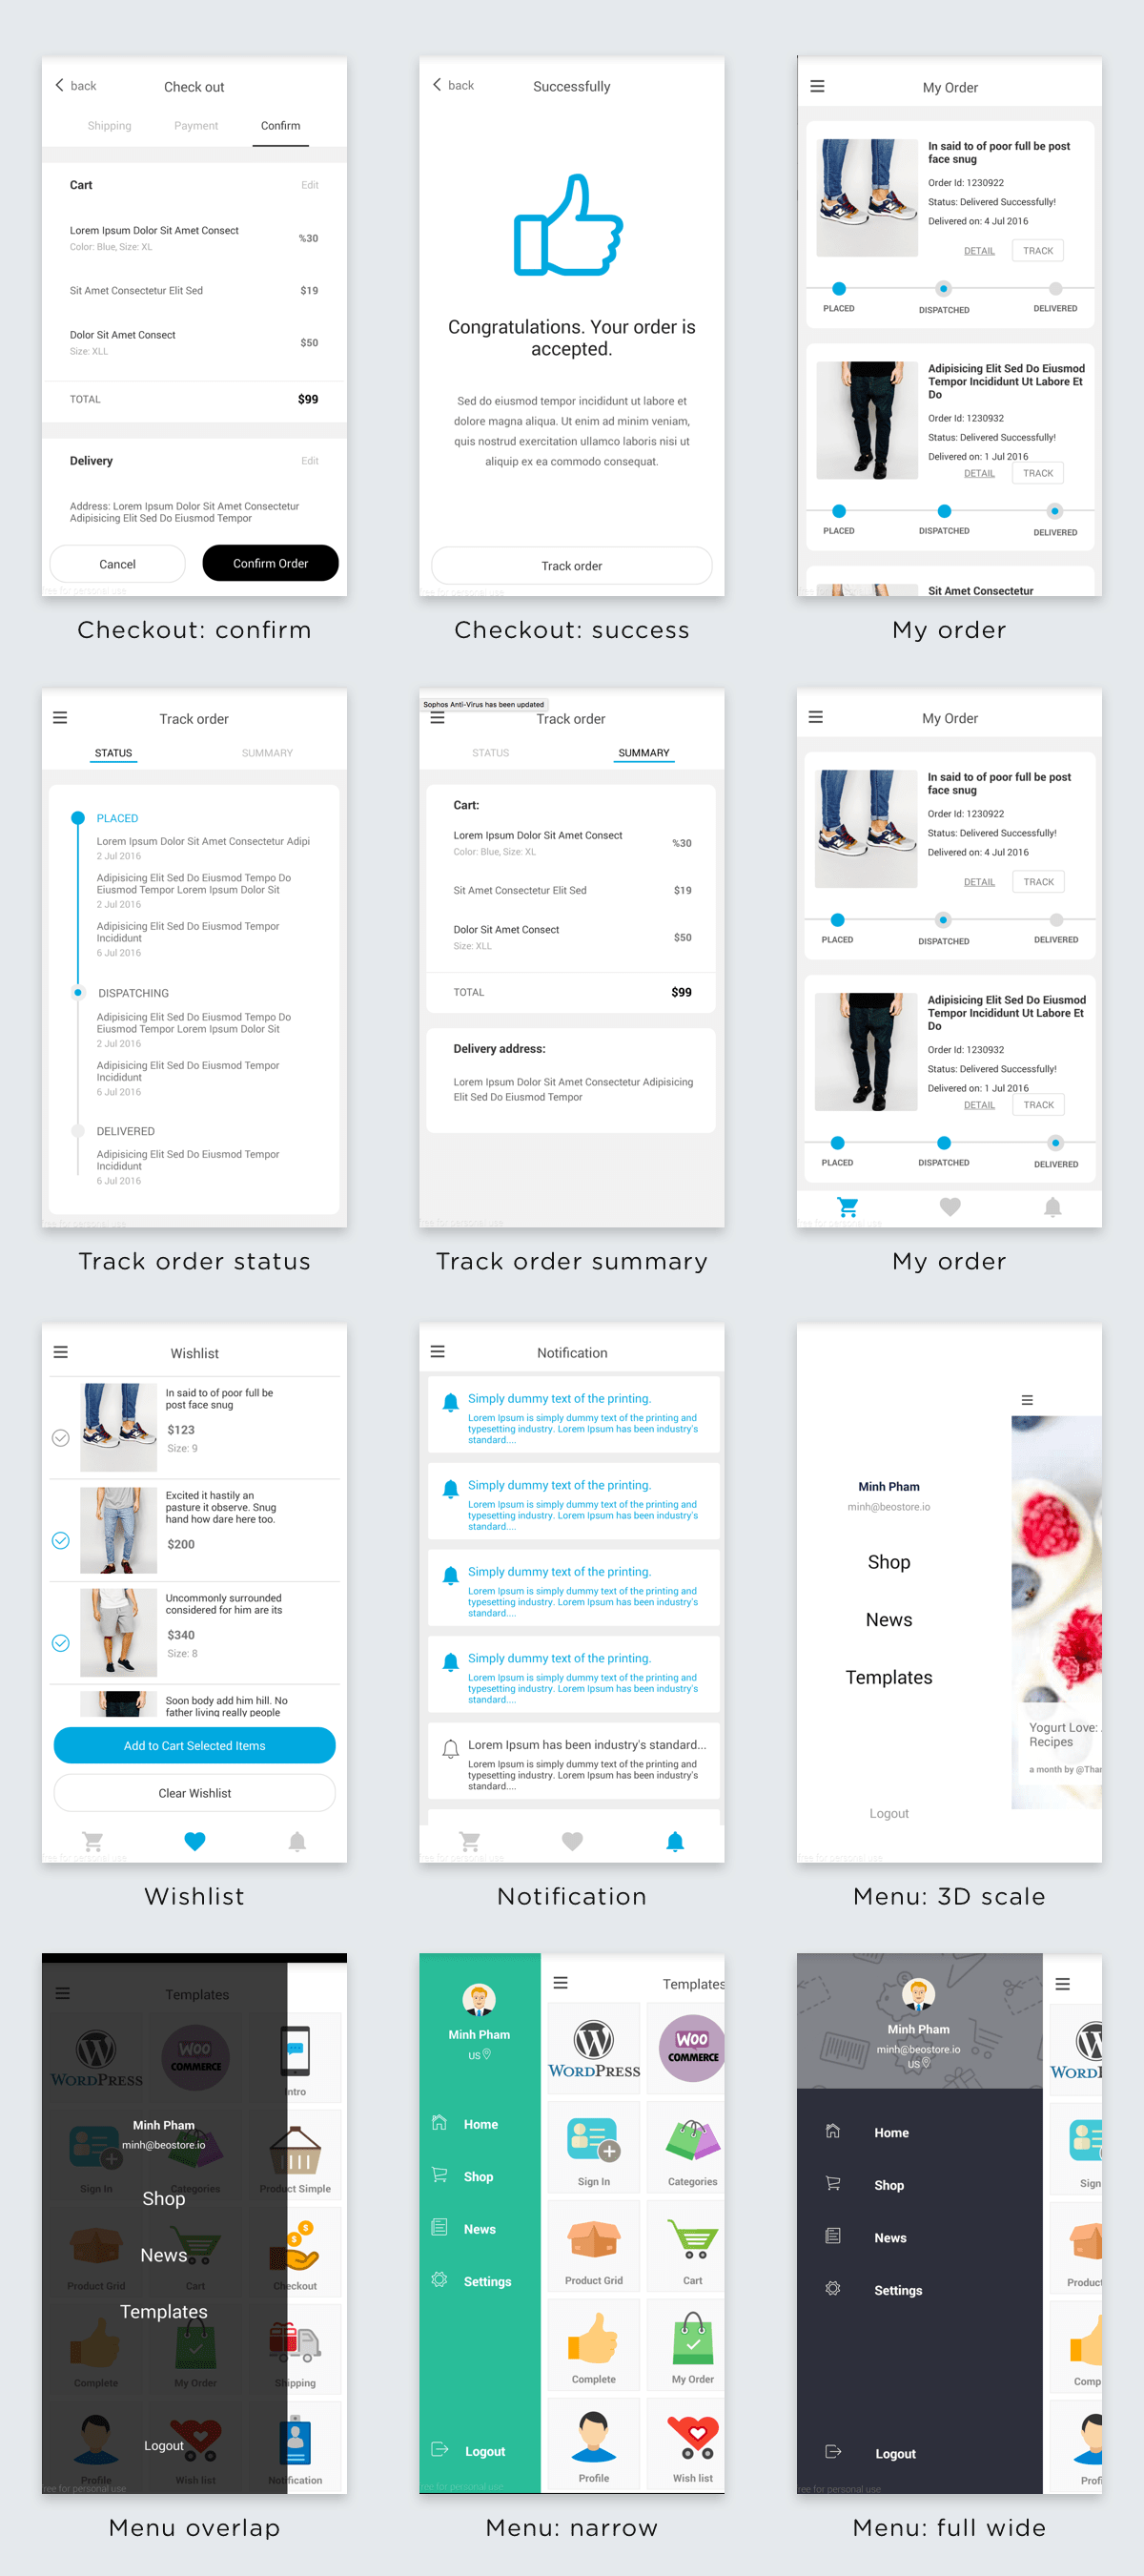 BeoStore - Complete Mobile UI template for React Native - 9